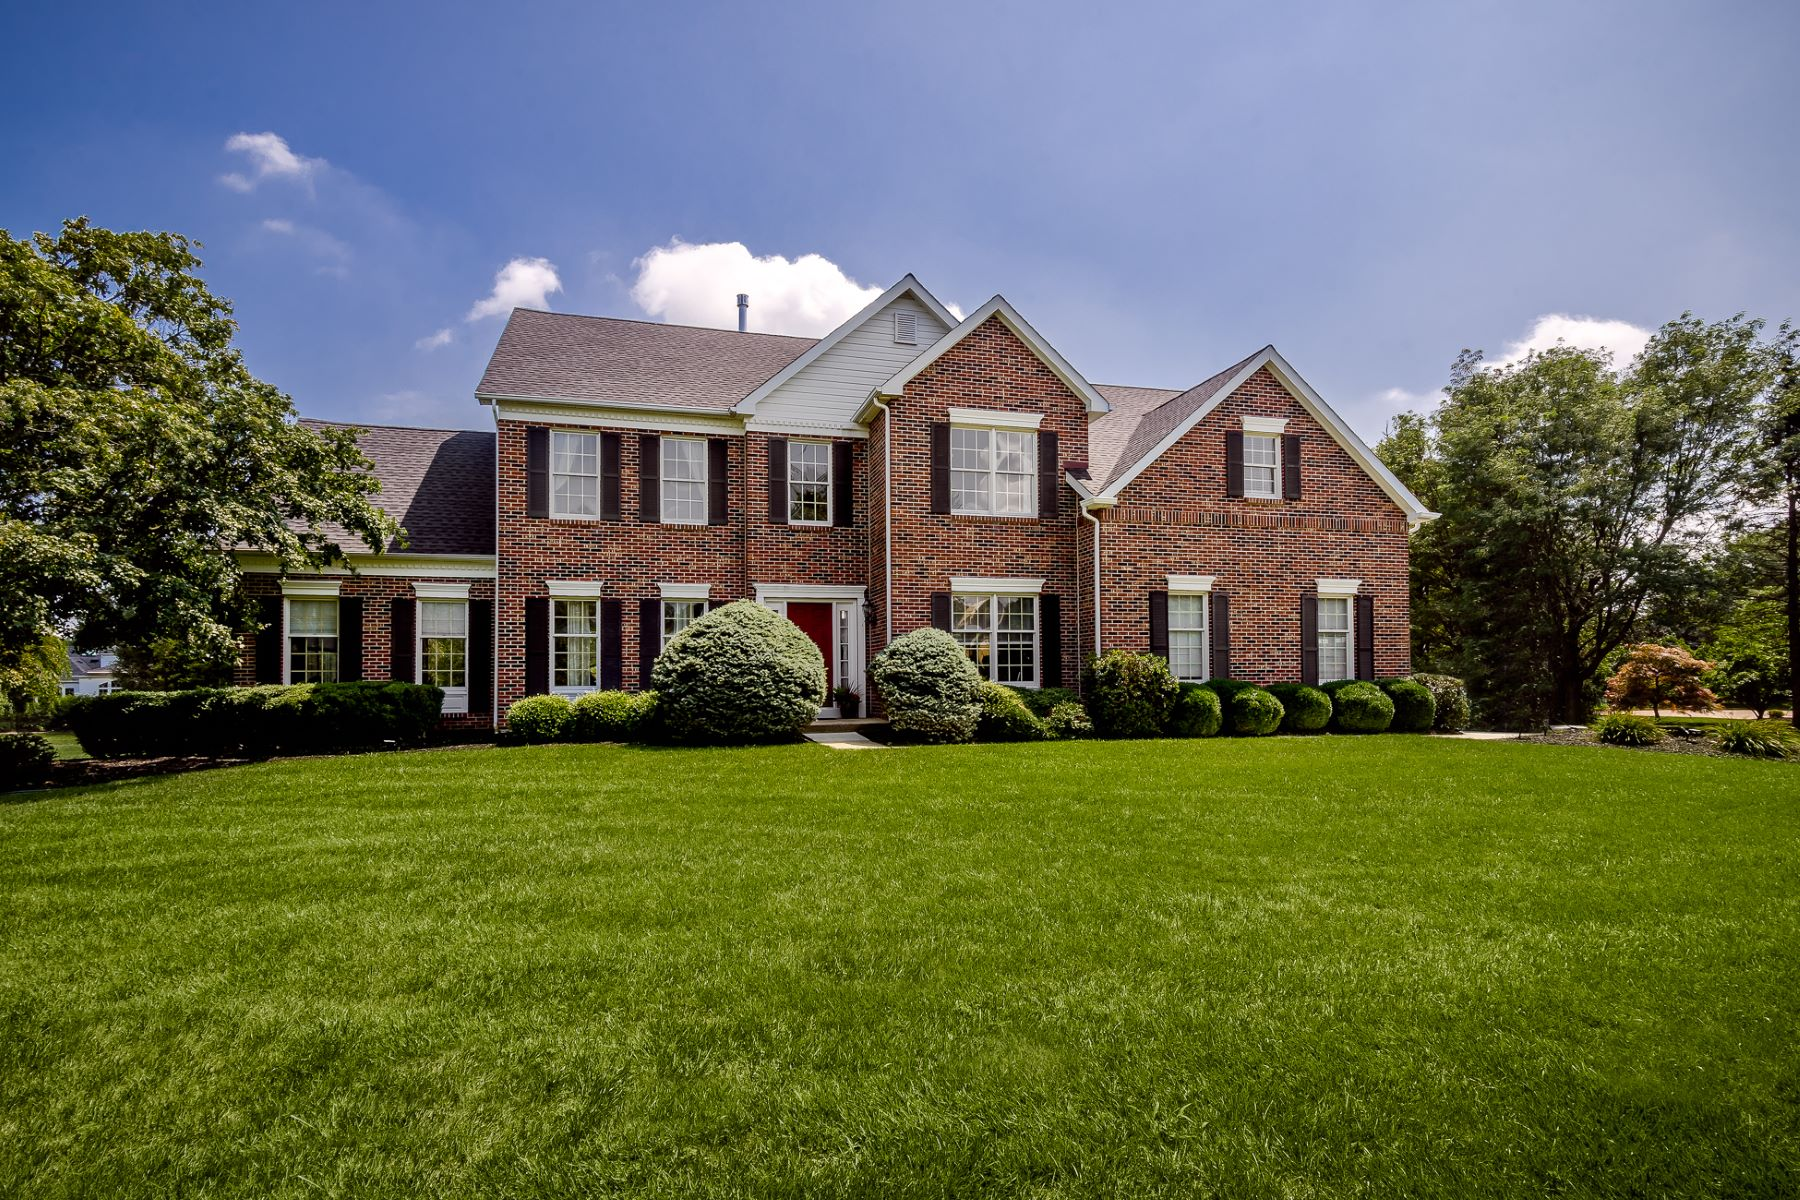 Property para Venda às A Fresh Take on Sophistication 40 Reed Drive South, West Windsor, Nova Jersey 08550 Estados Unidos